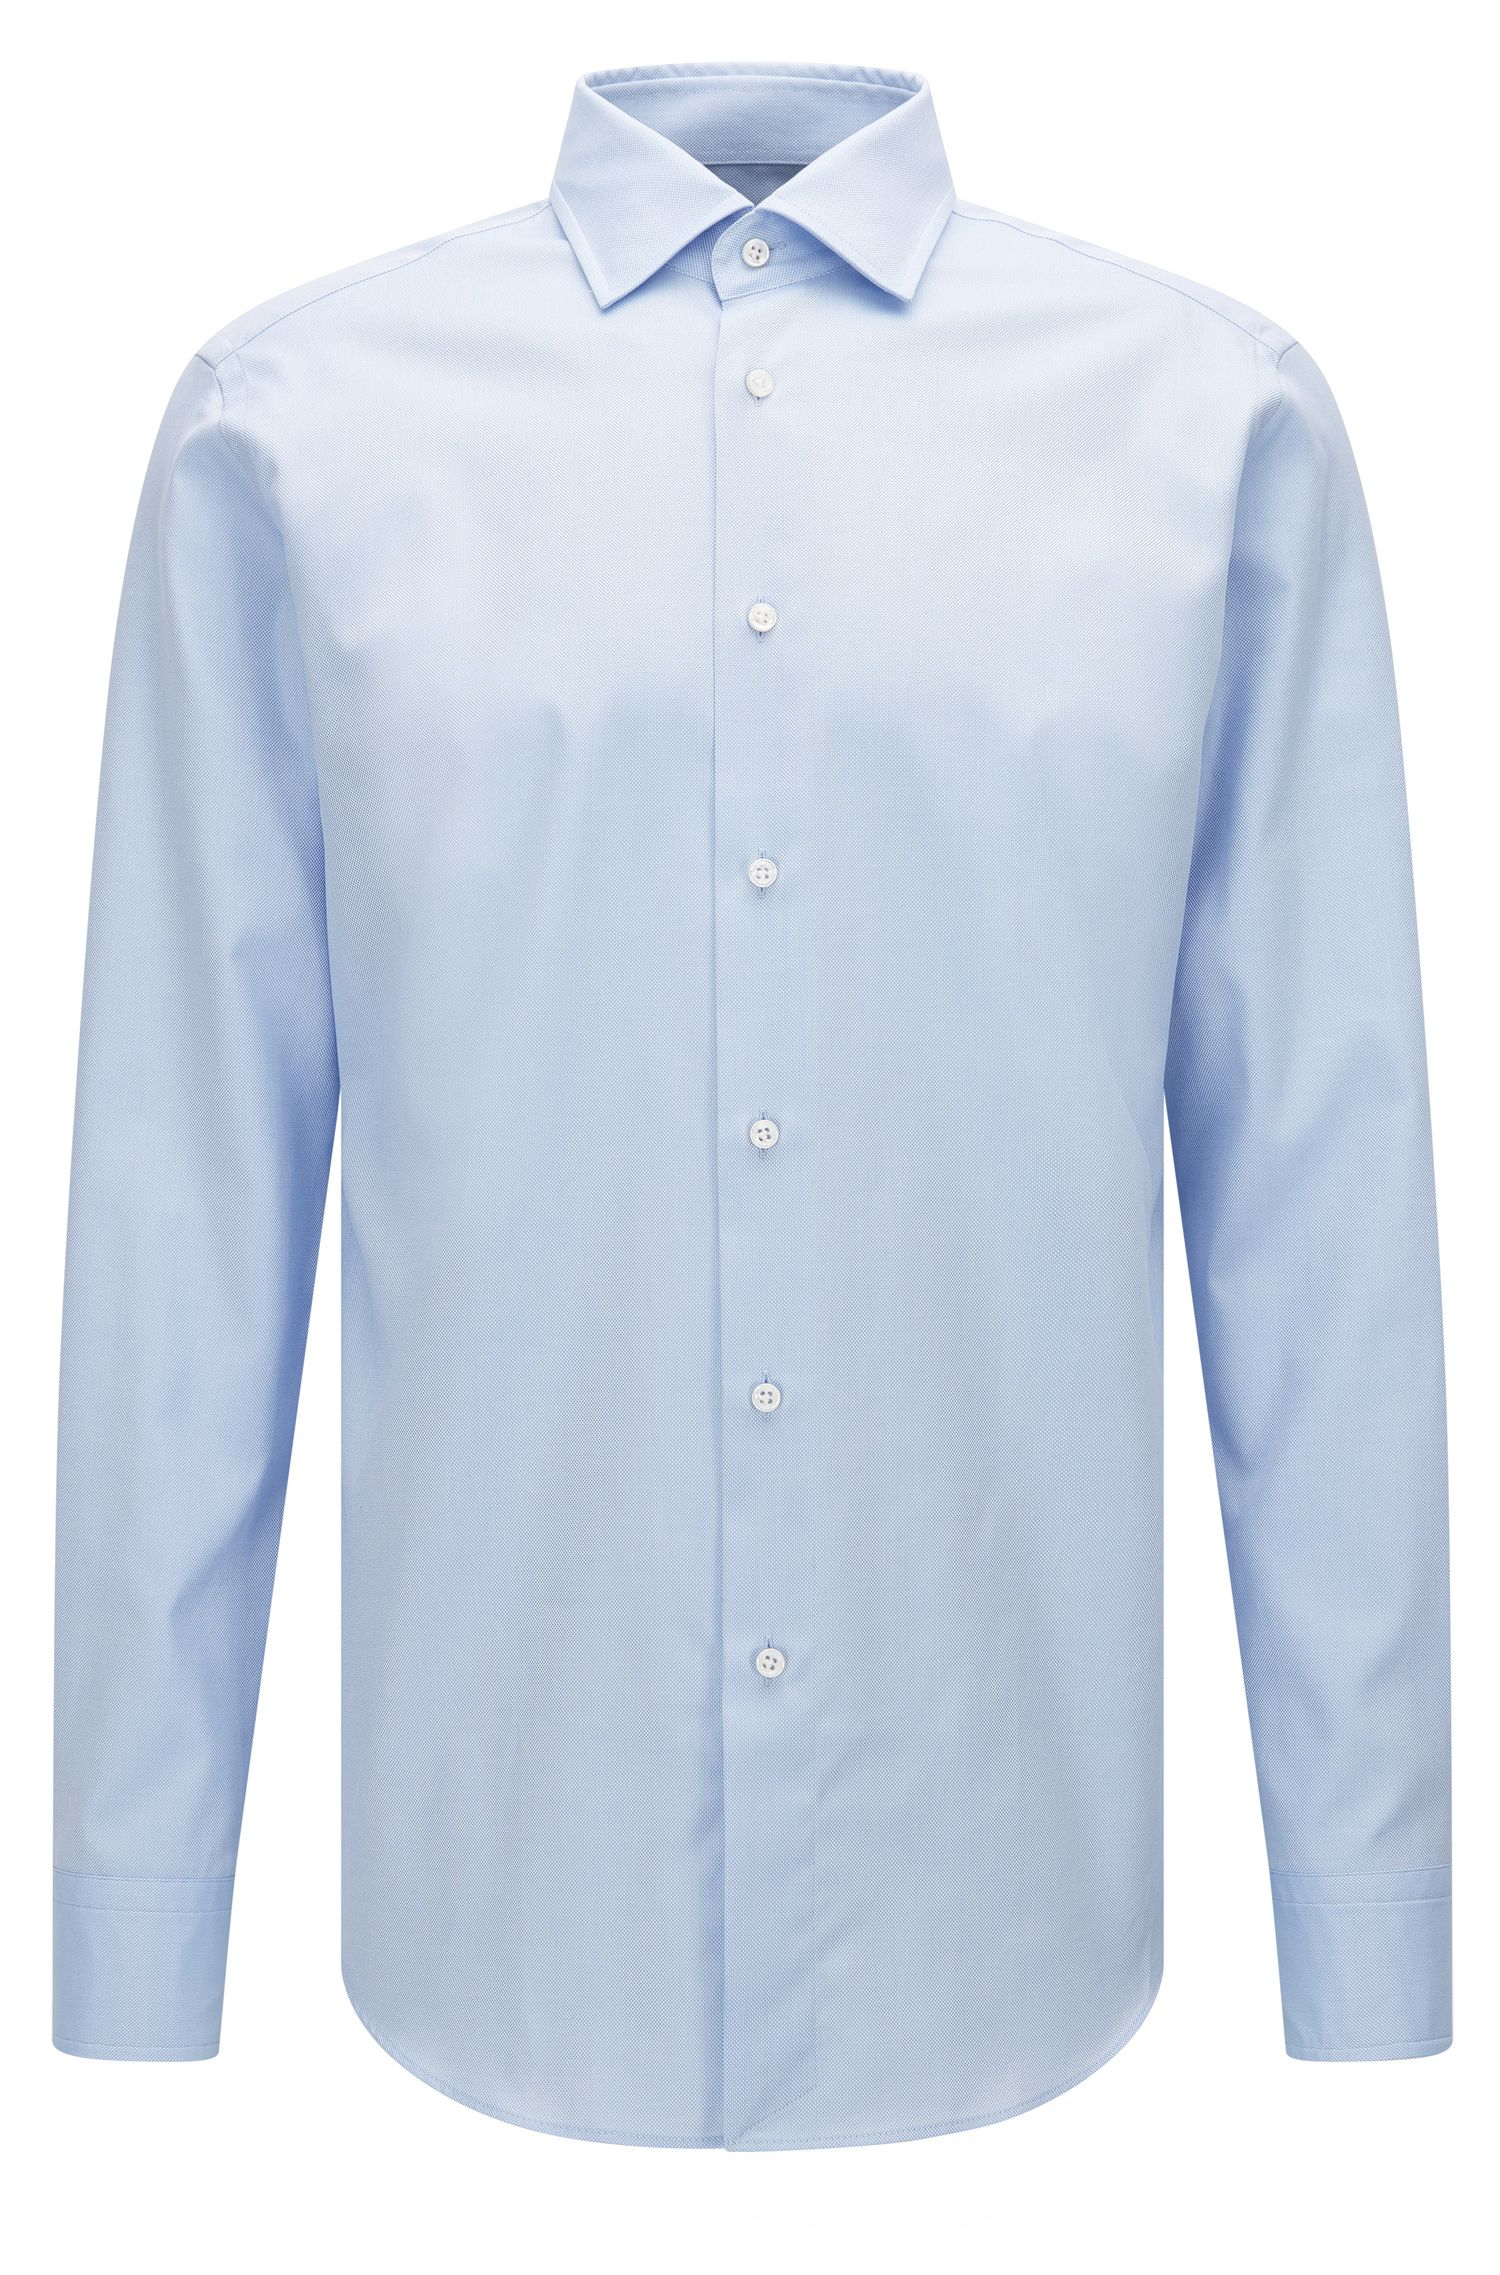 Regular-fit shirt in superfine Royal Oxford cotton